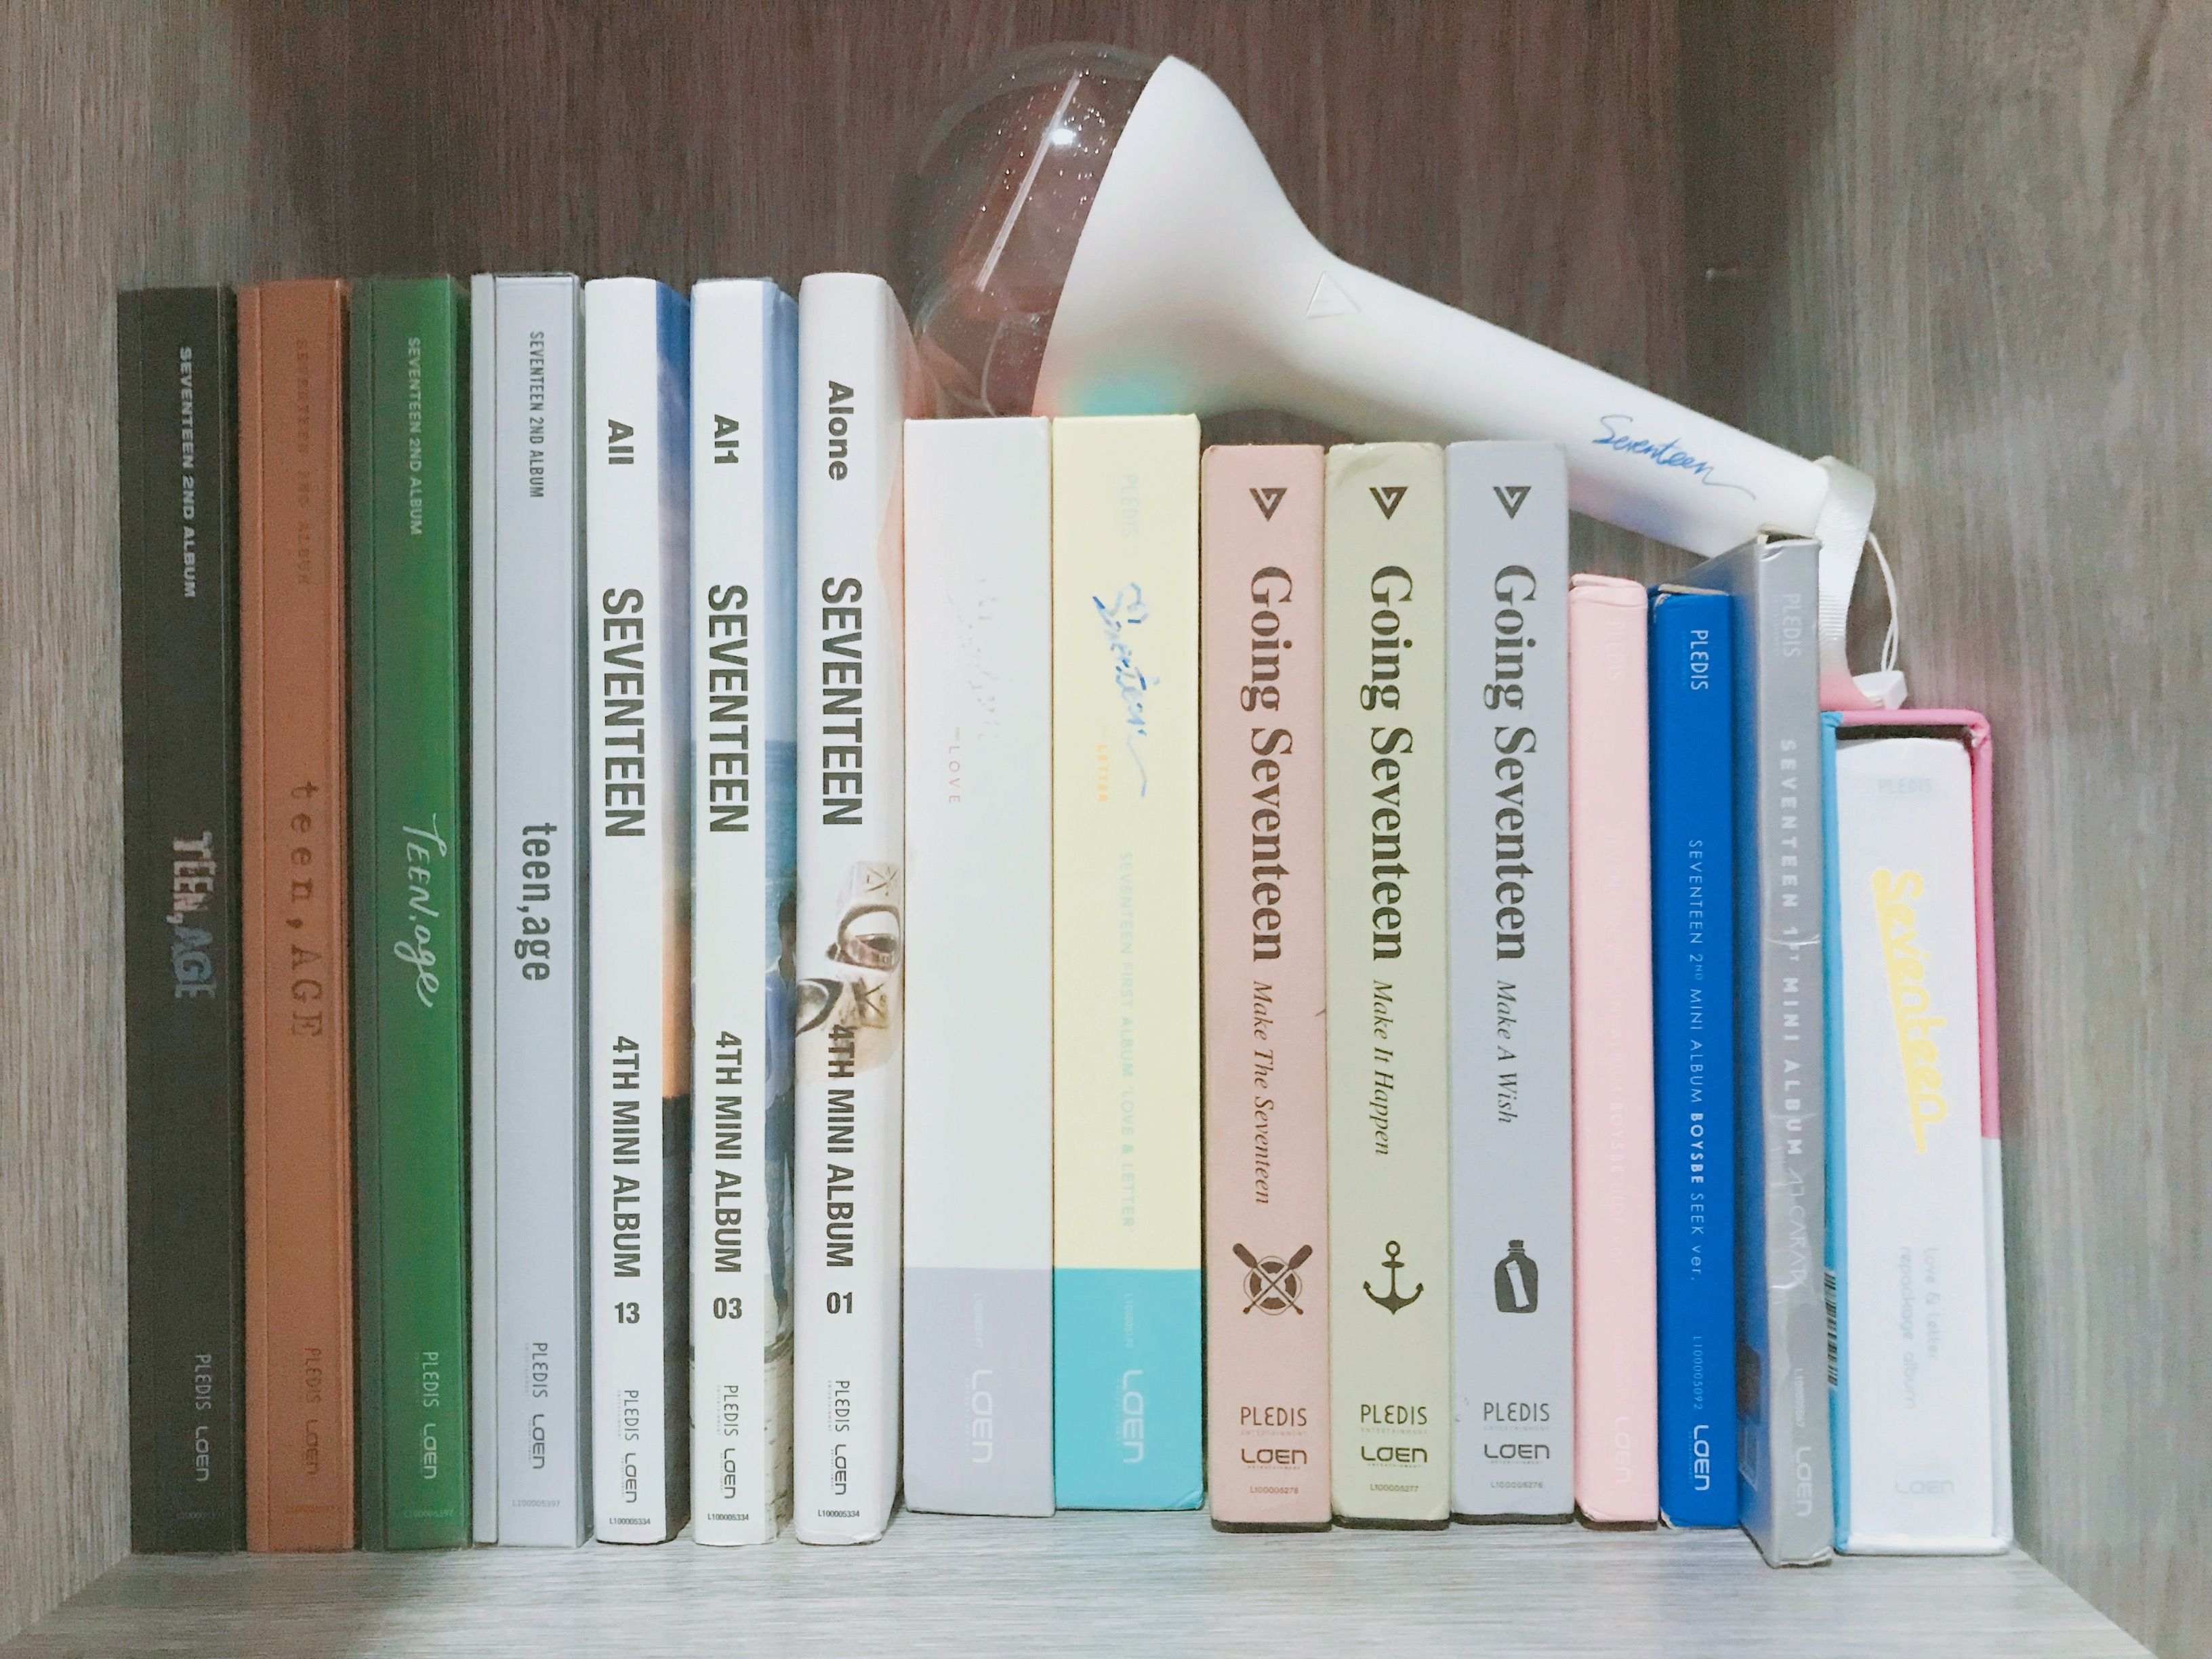 My collection for Seventeen albums ❤️ in 2019 | Seventeen